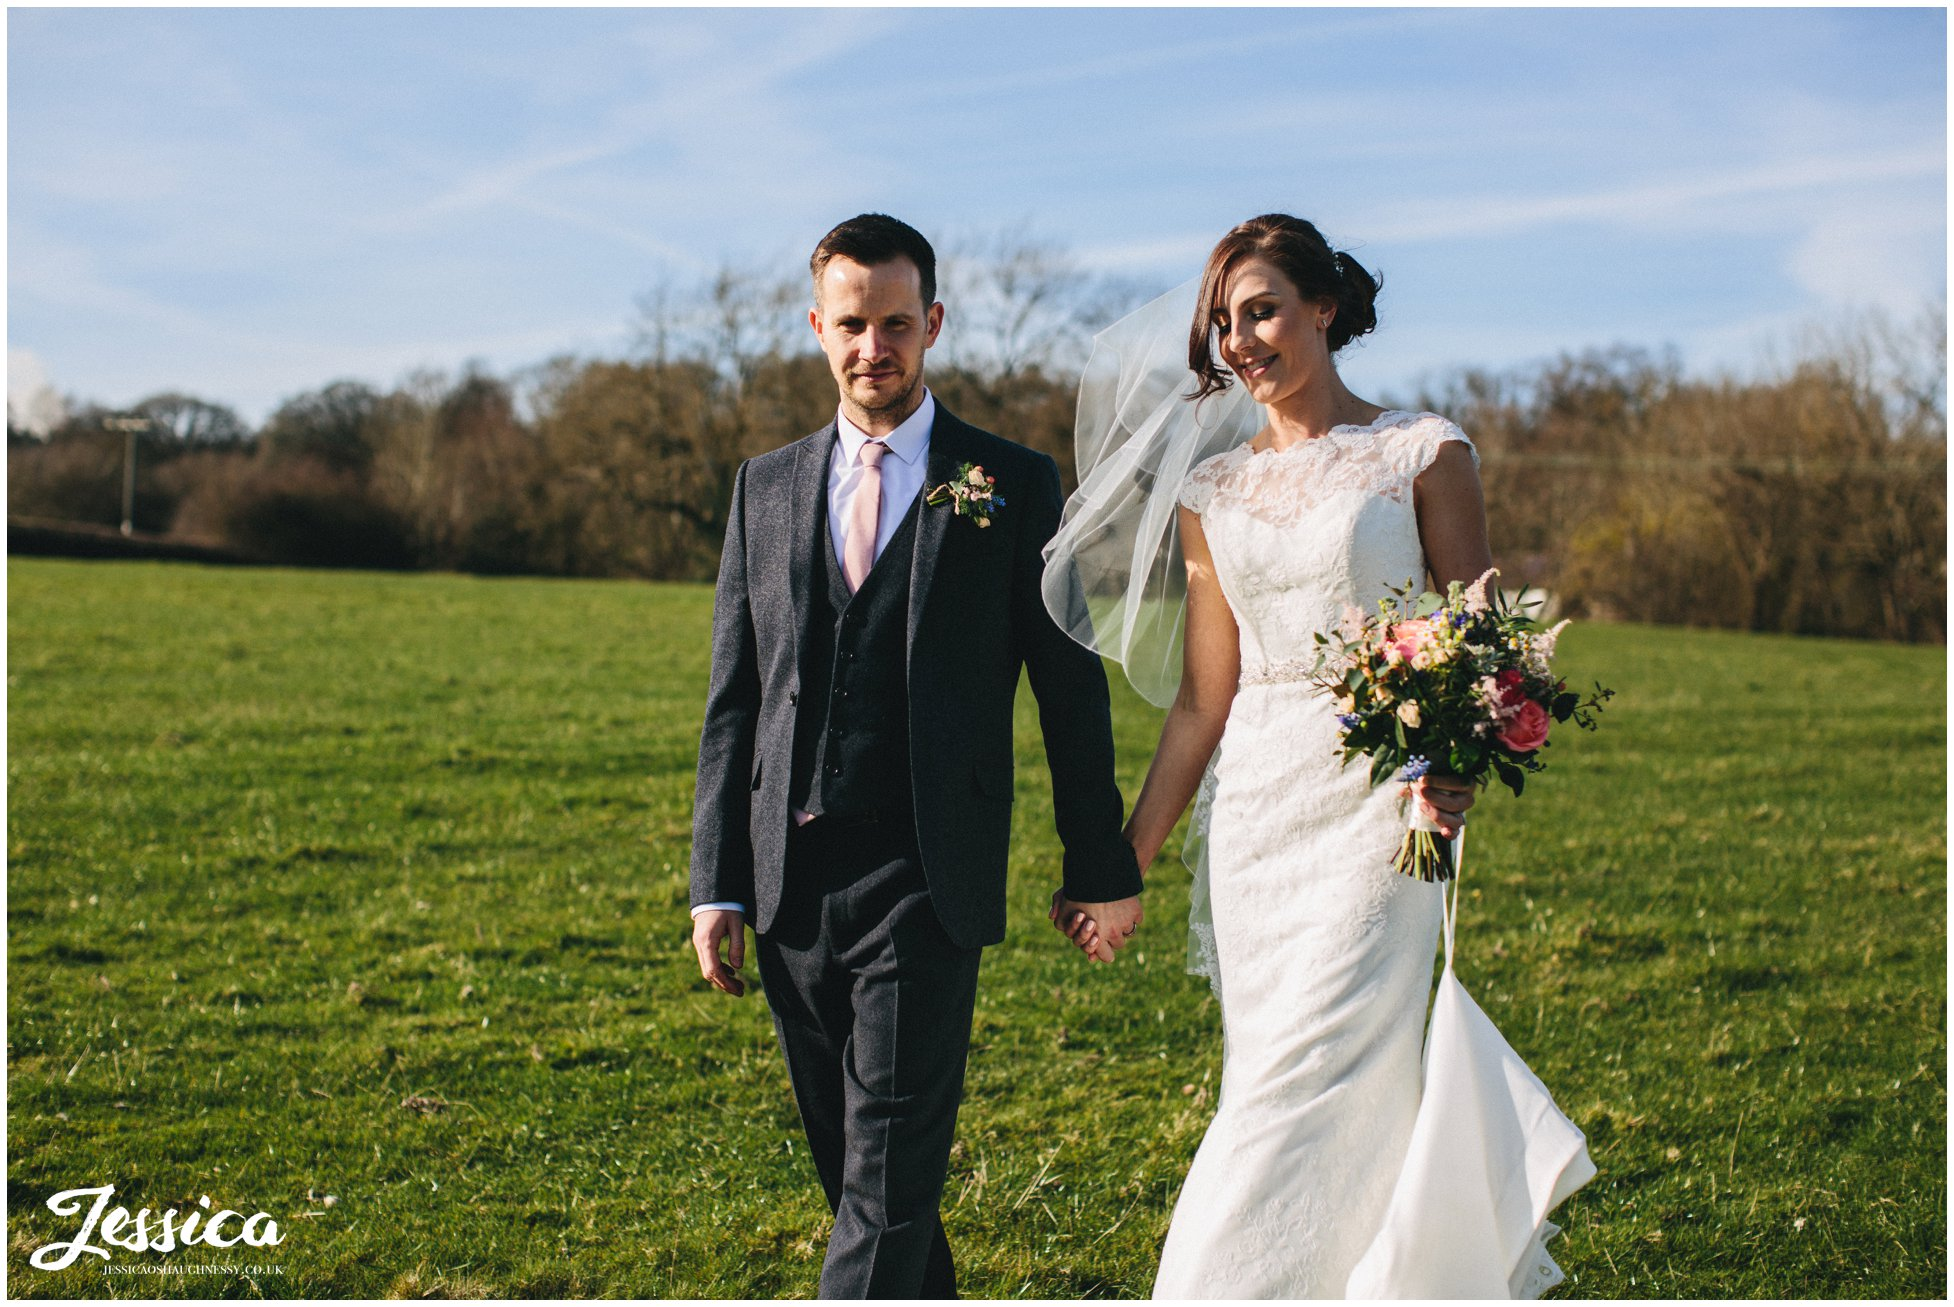 husband & wife walk in the sun at their wedding in north wales